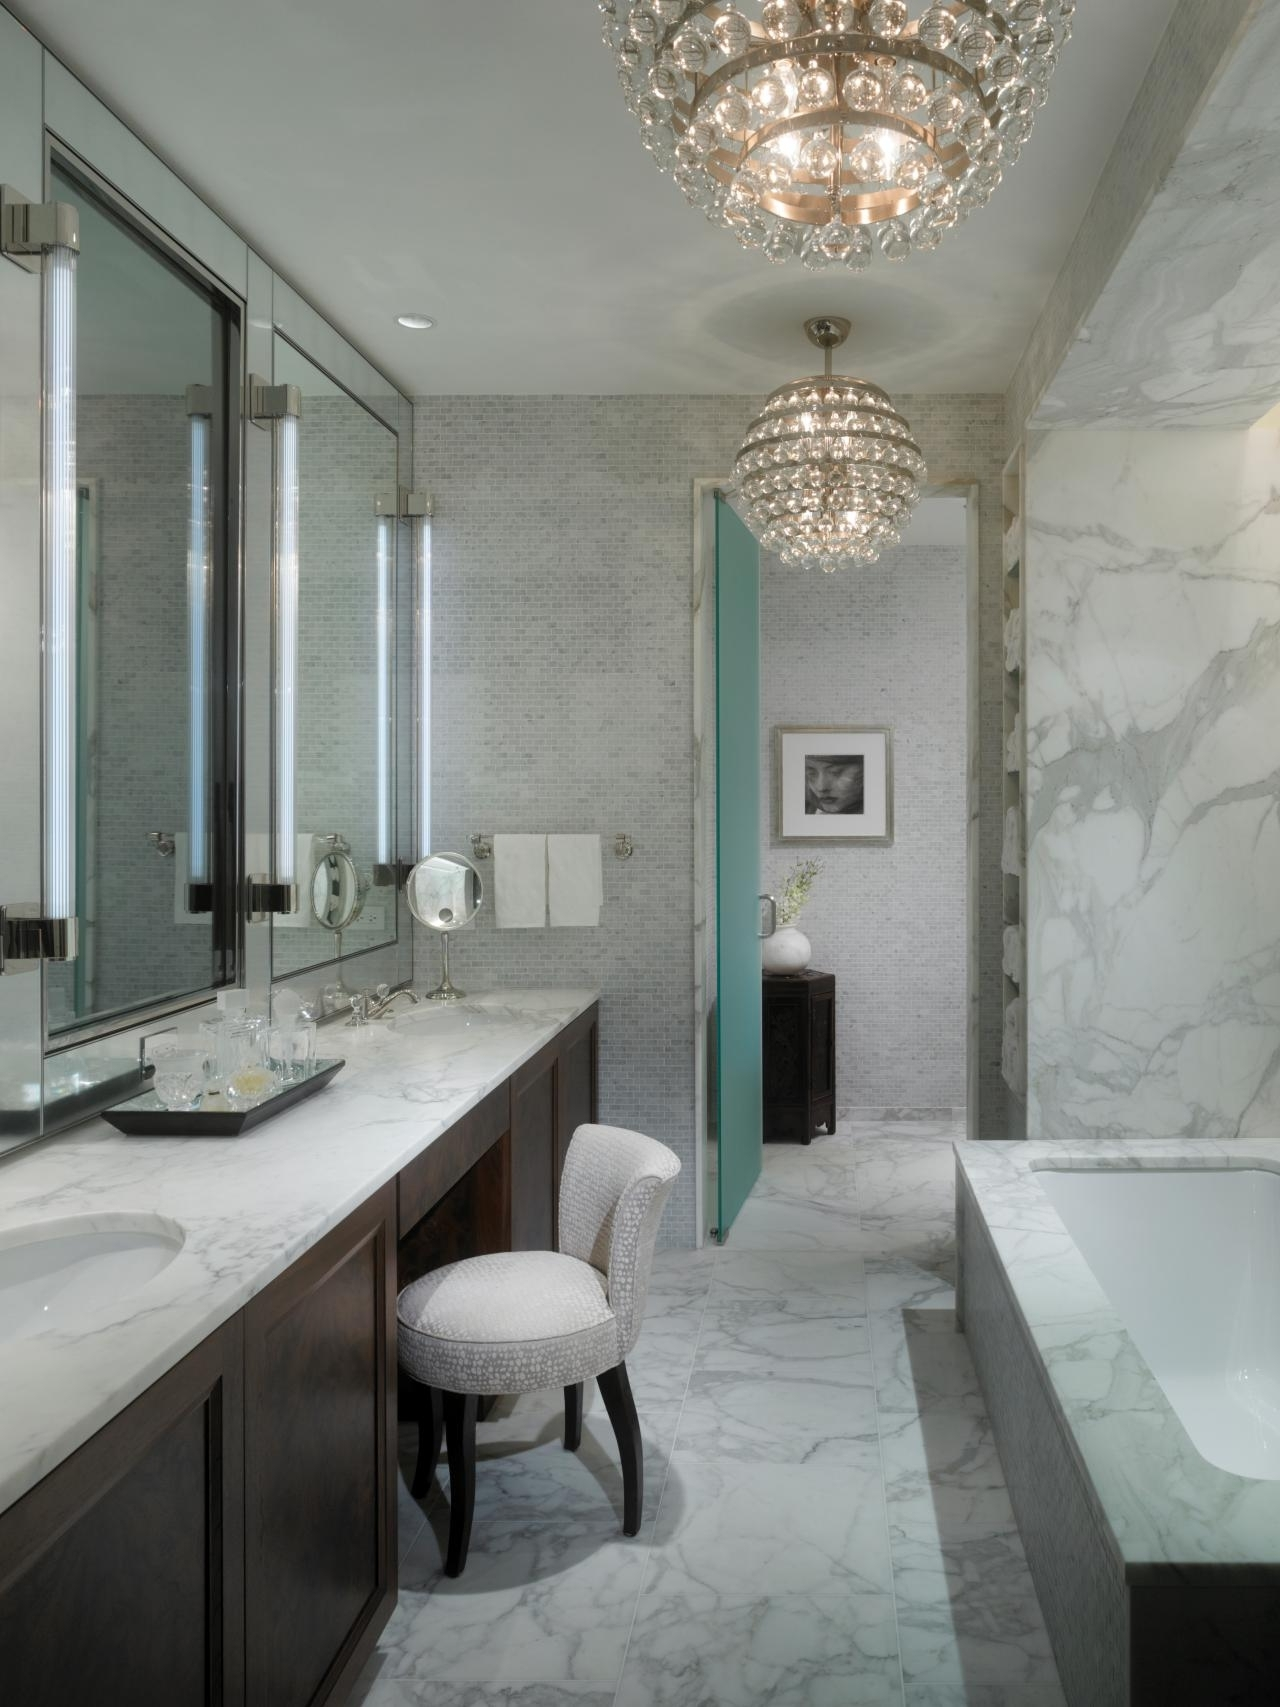 Newest Modern Bathroom Chandelier Lighting With Regard To Beautiful Small Bathroom Chandelier Ideas – Find Furniture Fit For (View 9 of 15)